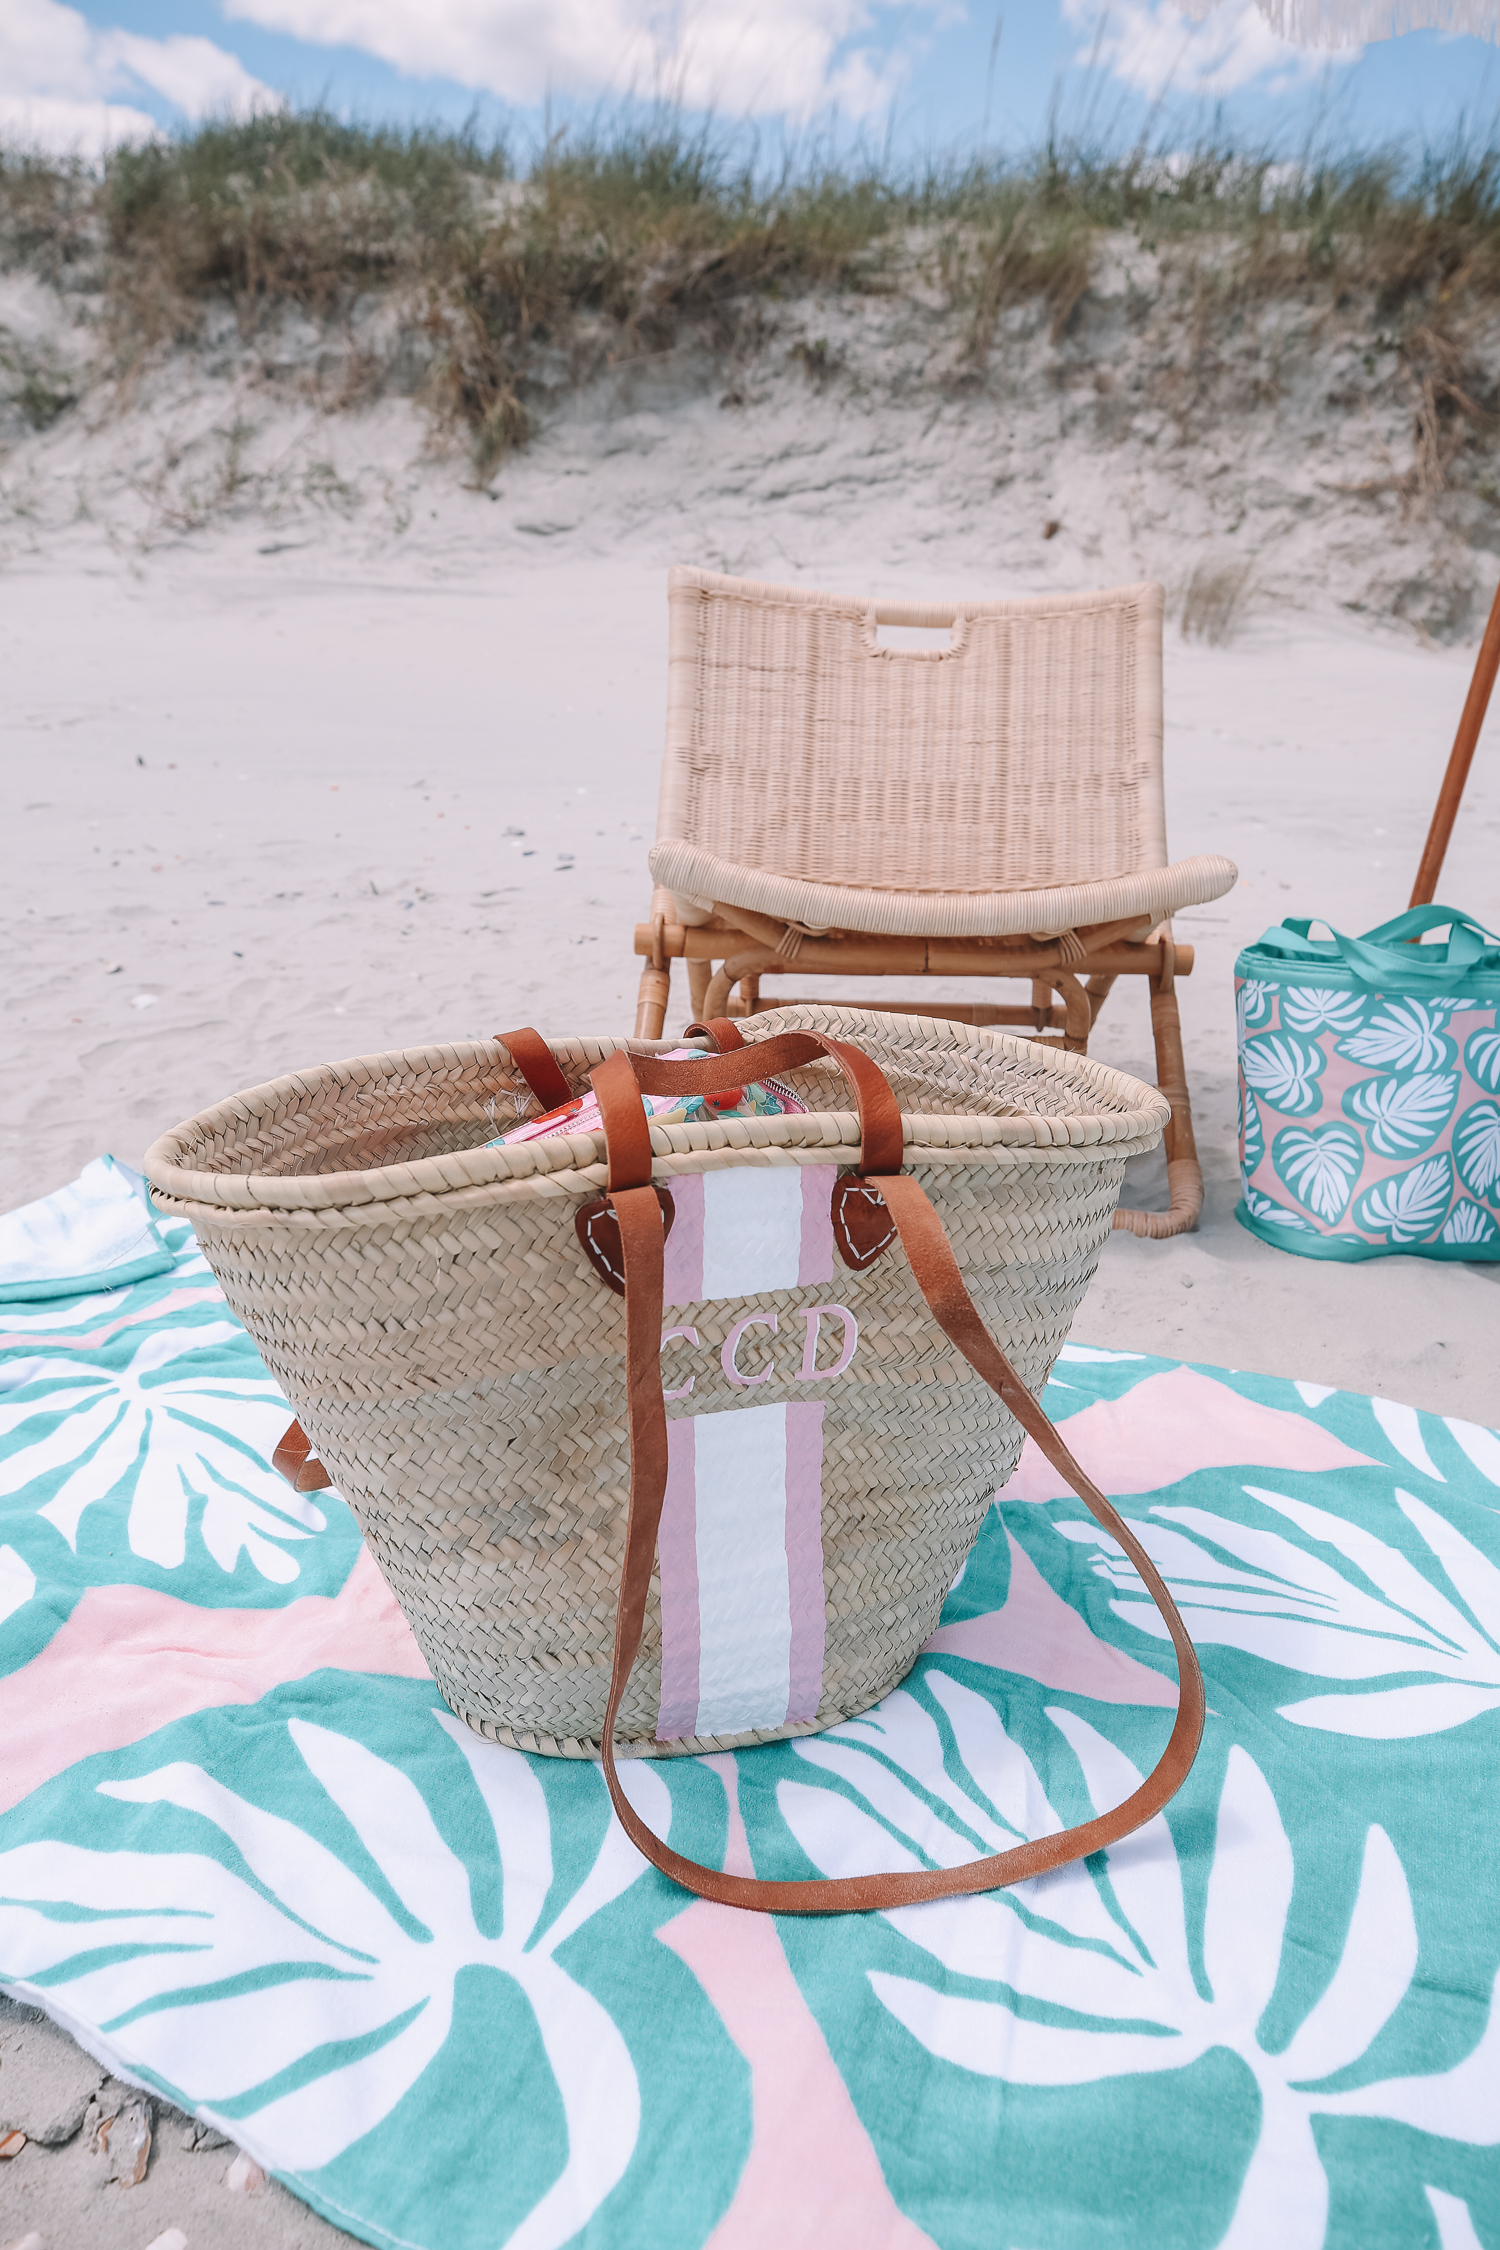 whats-in-my-beach-bag-caitlin-covington-southern-curls-and-pearls-11.jpg